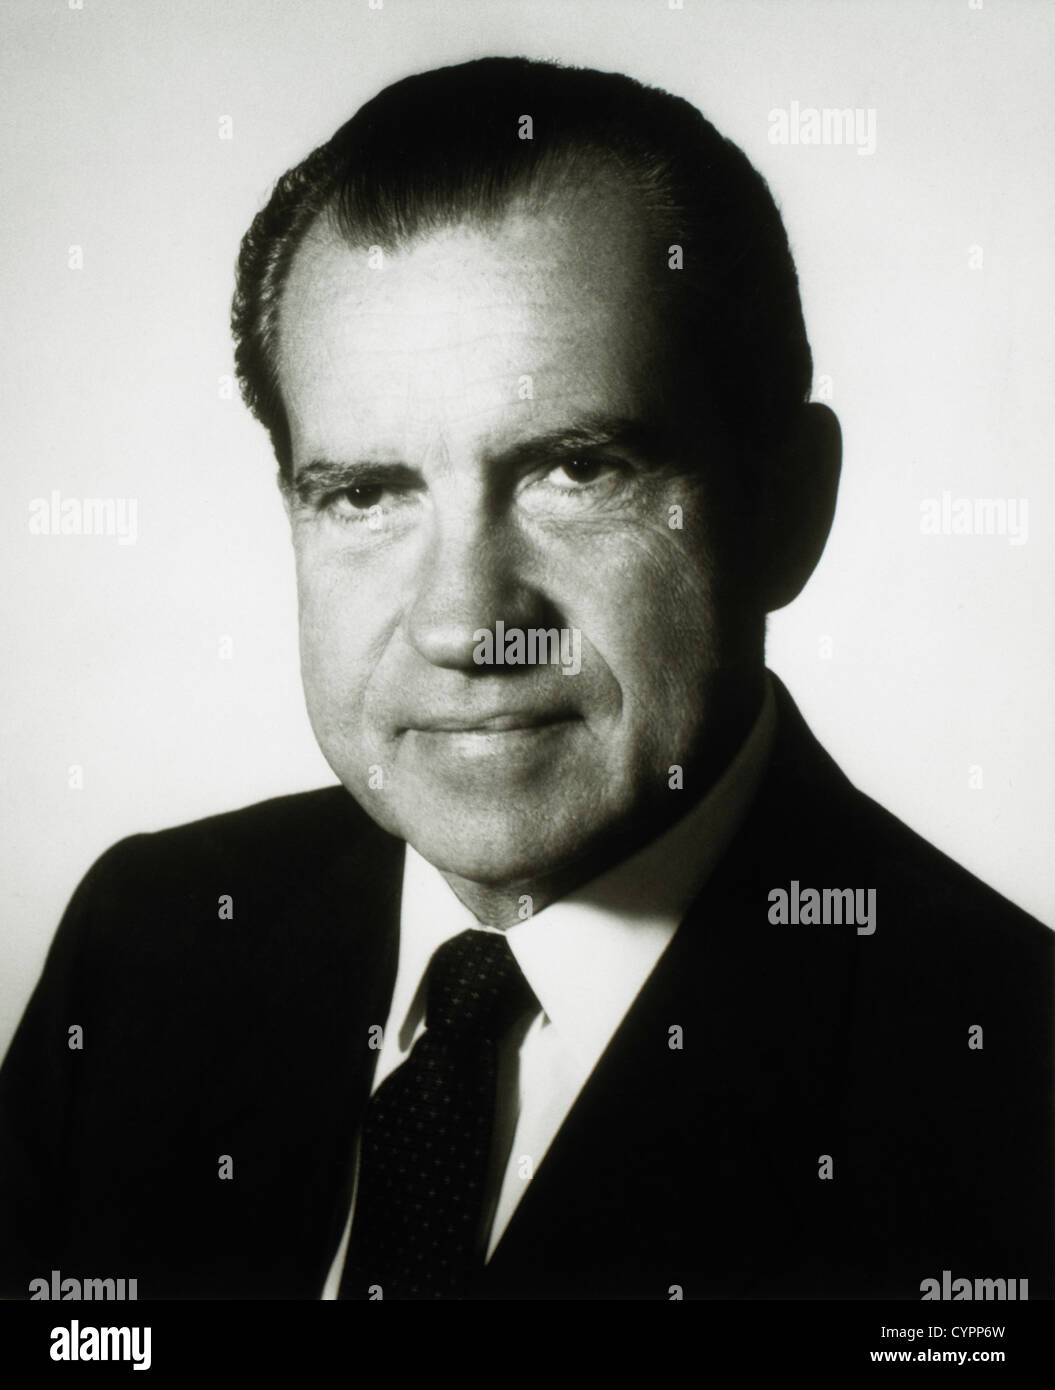 Richard M. Nixon (1913-1994), 37th President of the United ...